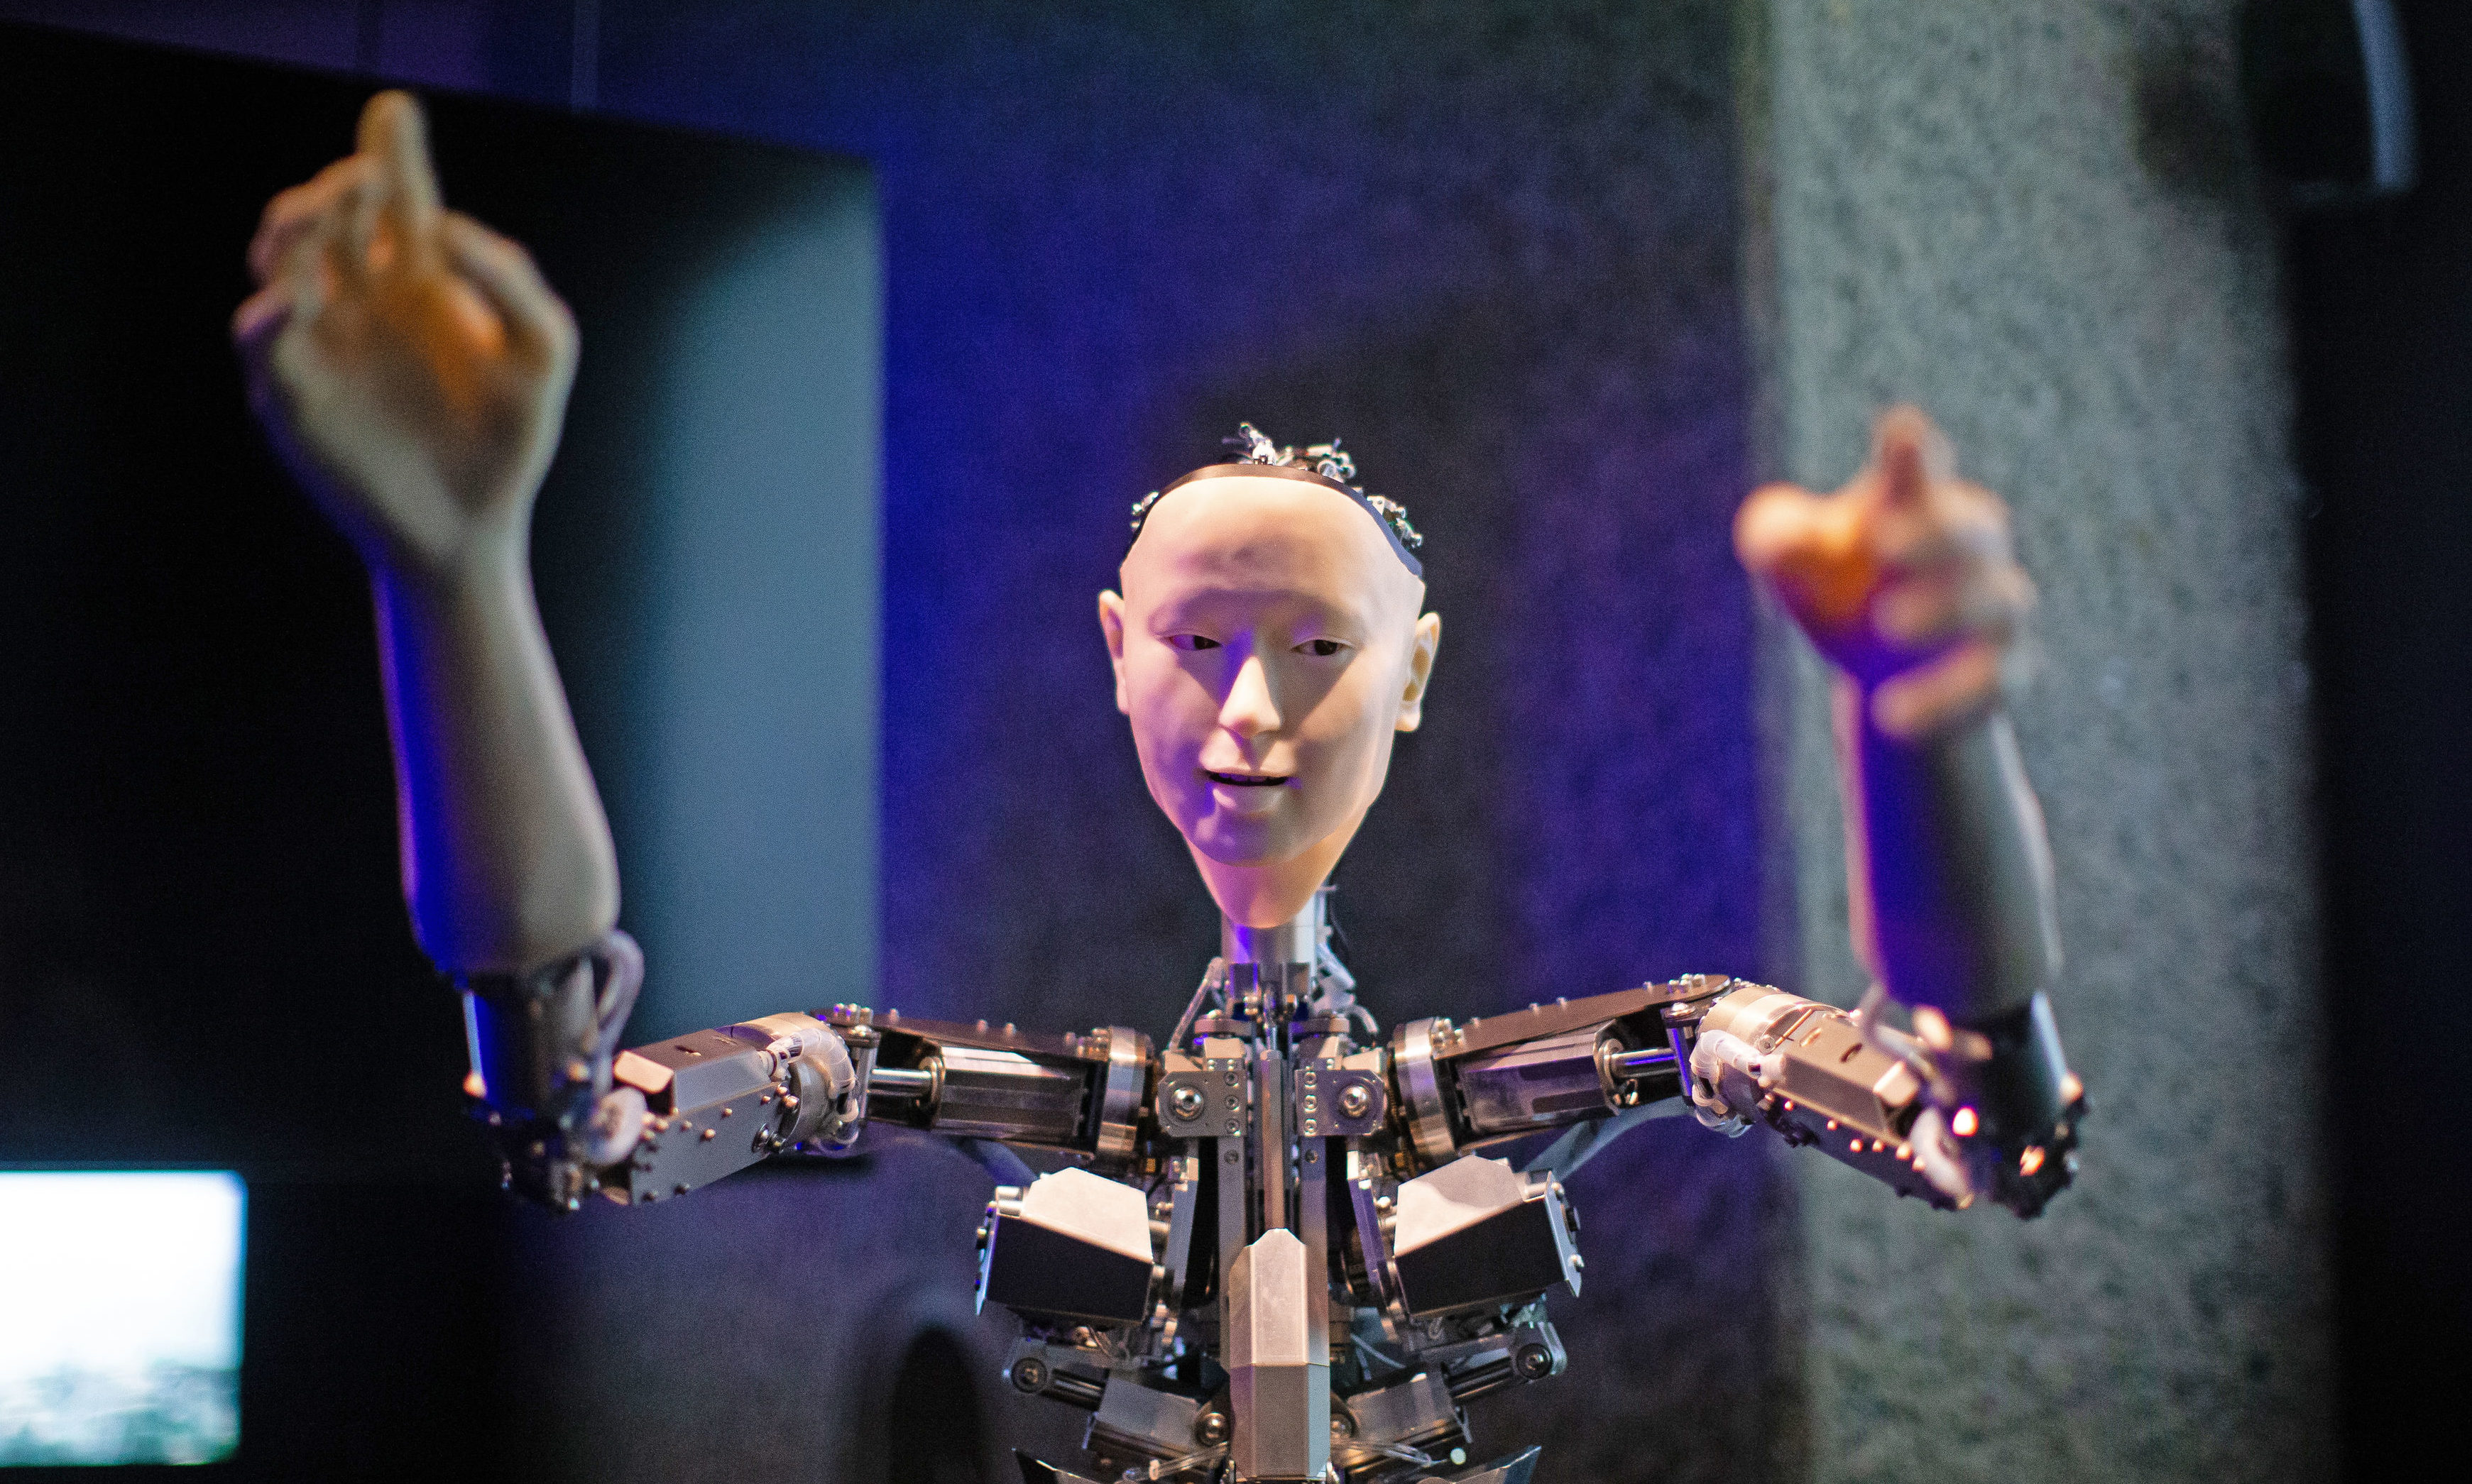 Roboticist Hiroshi Ishiguro's 'Alter', a machine body with a human like face and hands who learns through interplaying, on display.